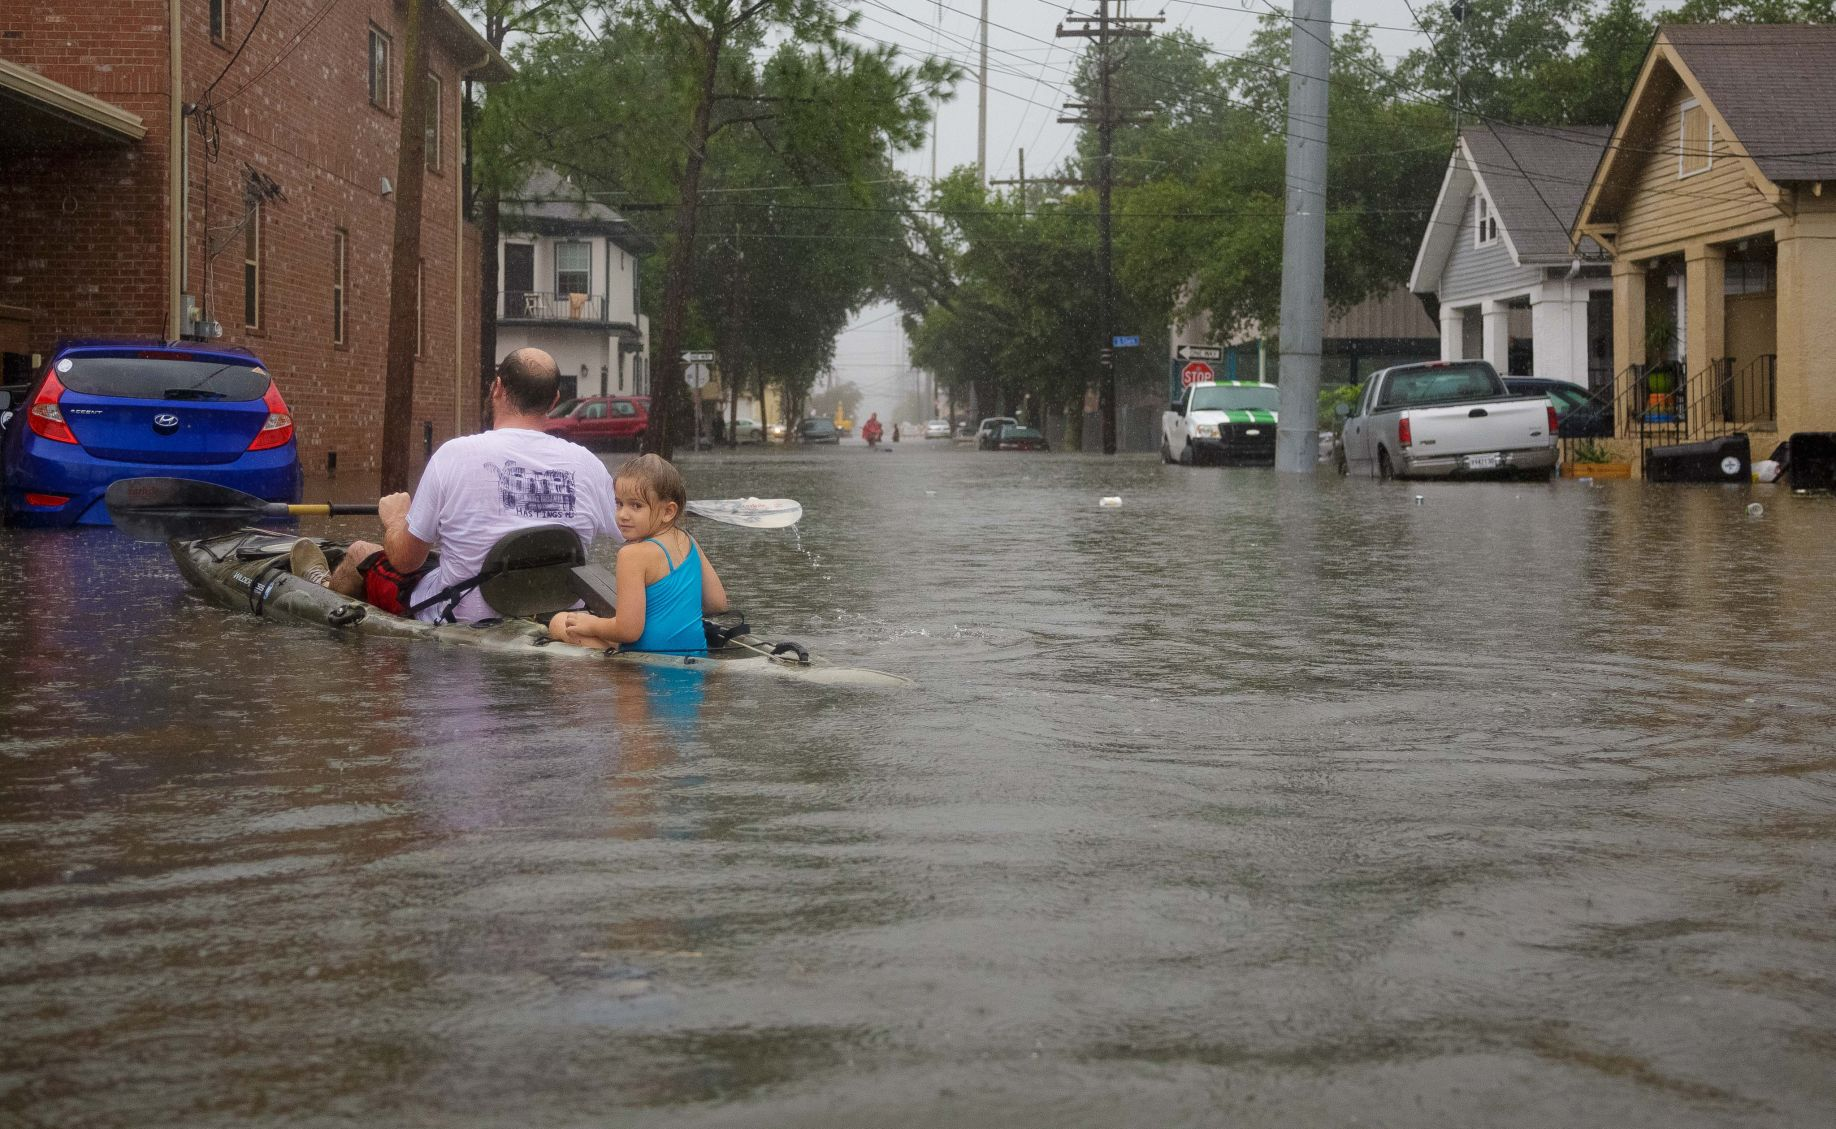 New Orleans Floods as Rain Overcomes Pumps